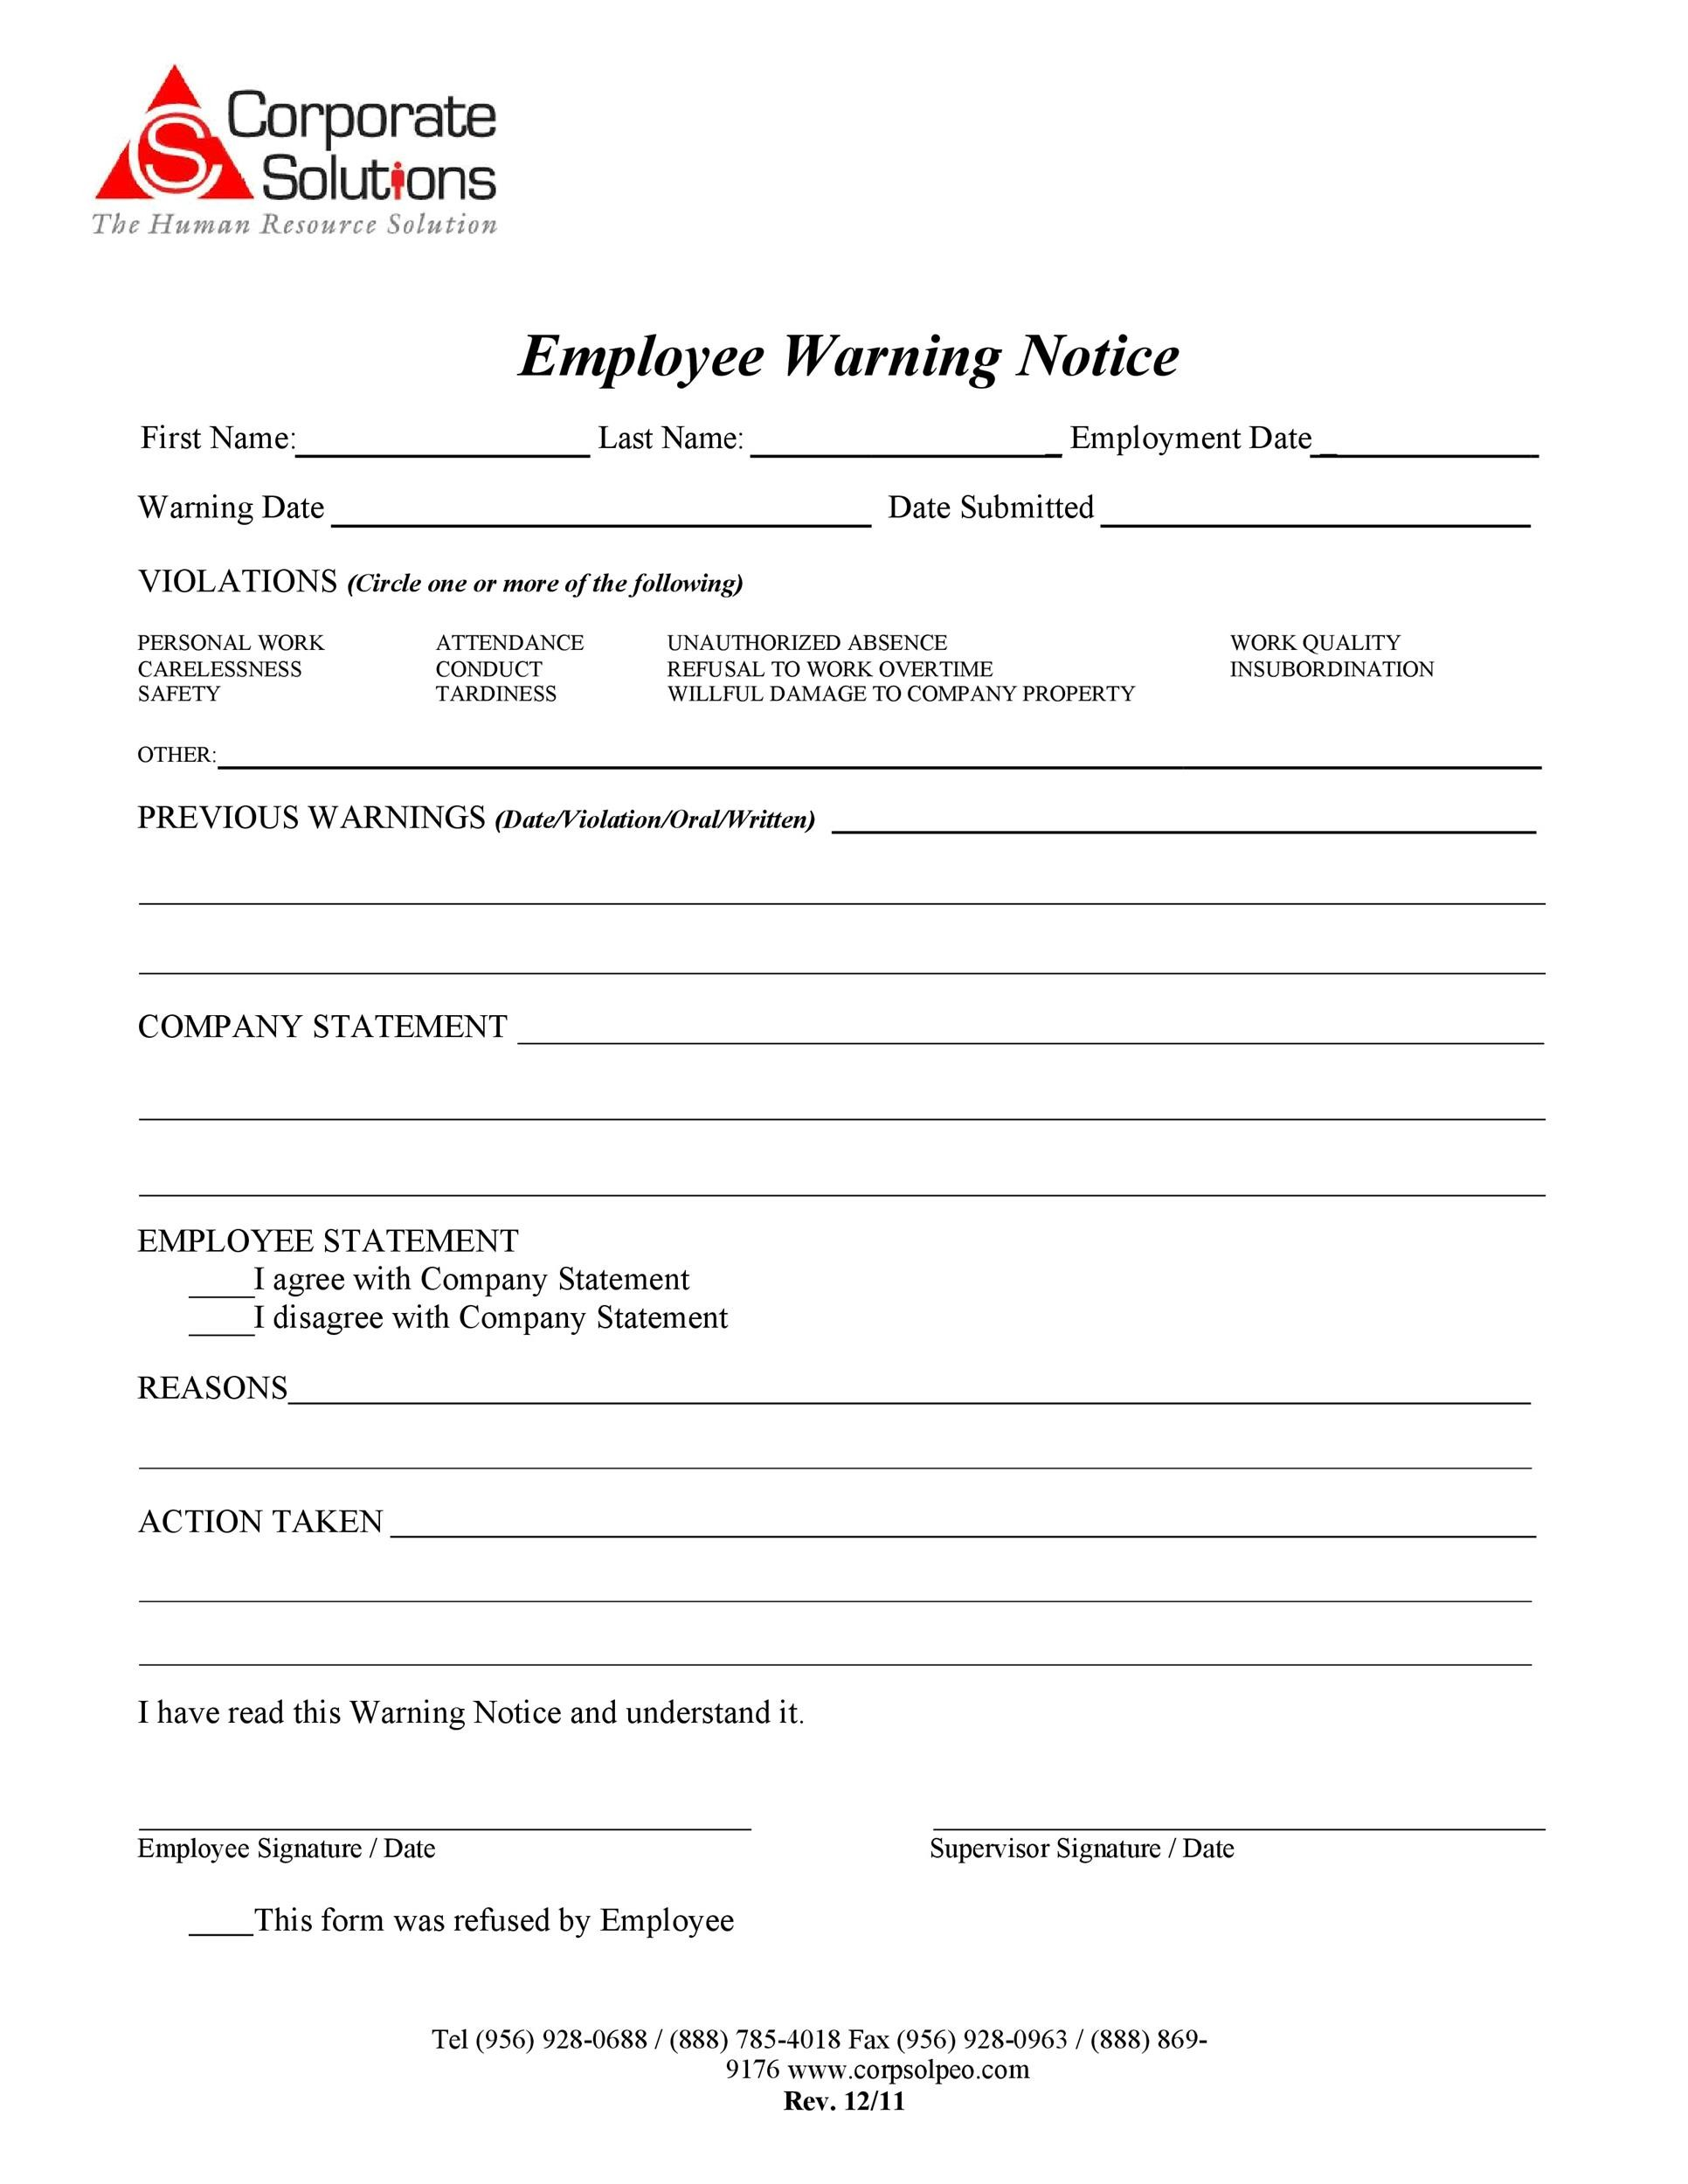 Free employee warning notice 16